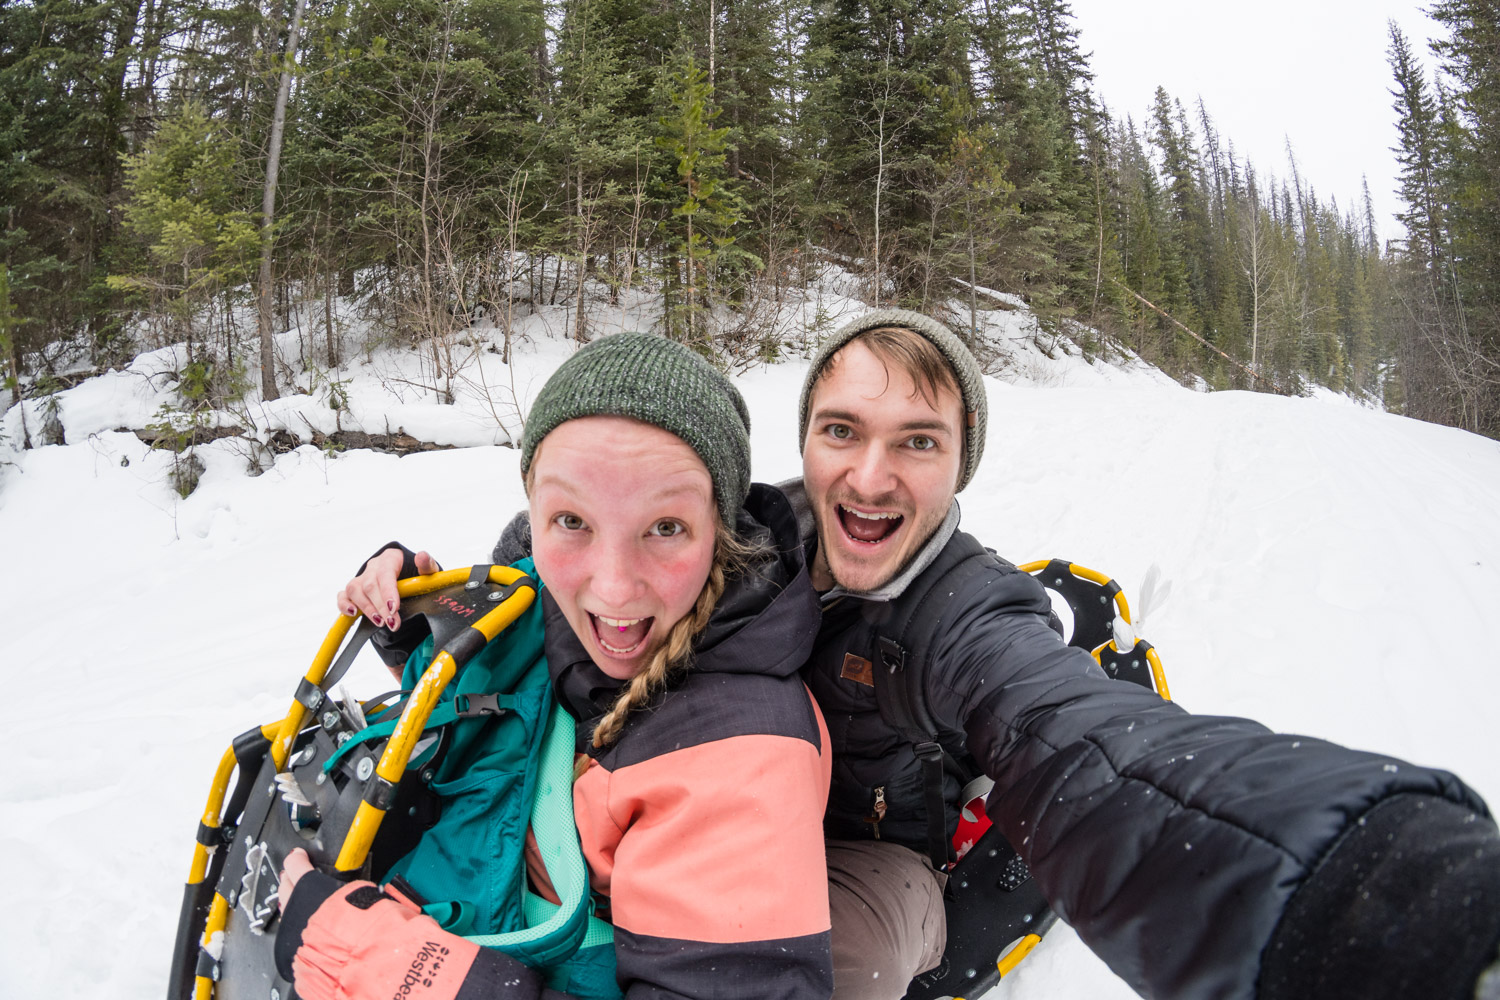 Riding a crazy carpet with Katie. A crazy carpet is basically a sheet of plastic with two holes at the front to dig your feet into. We hiked uphill and broke out the crazy carpet for the downhill sections of our hike to Wapta Falls.